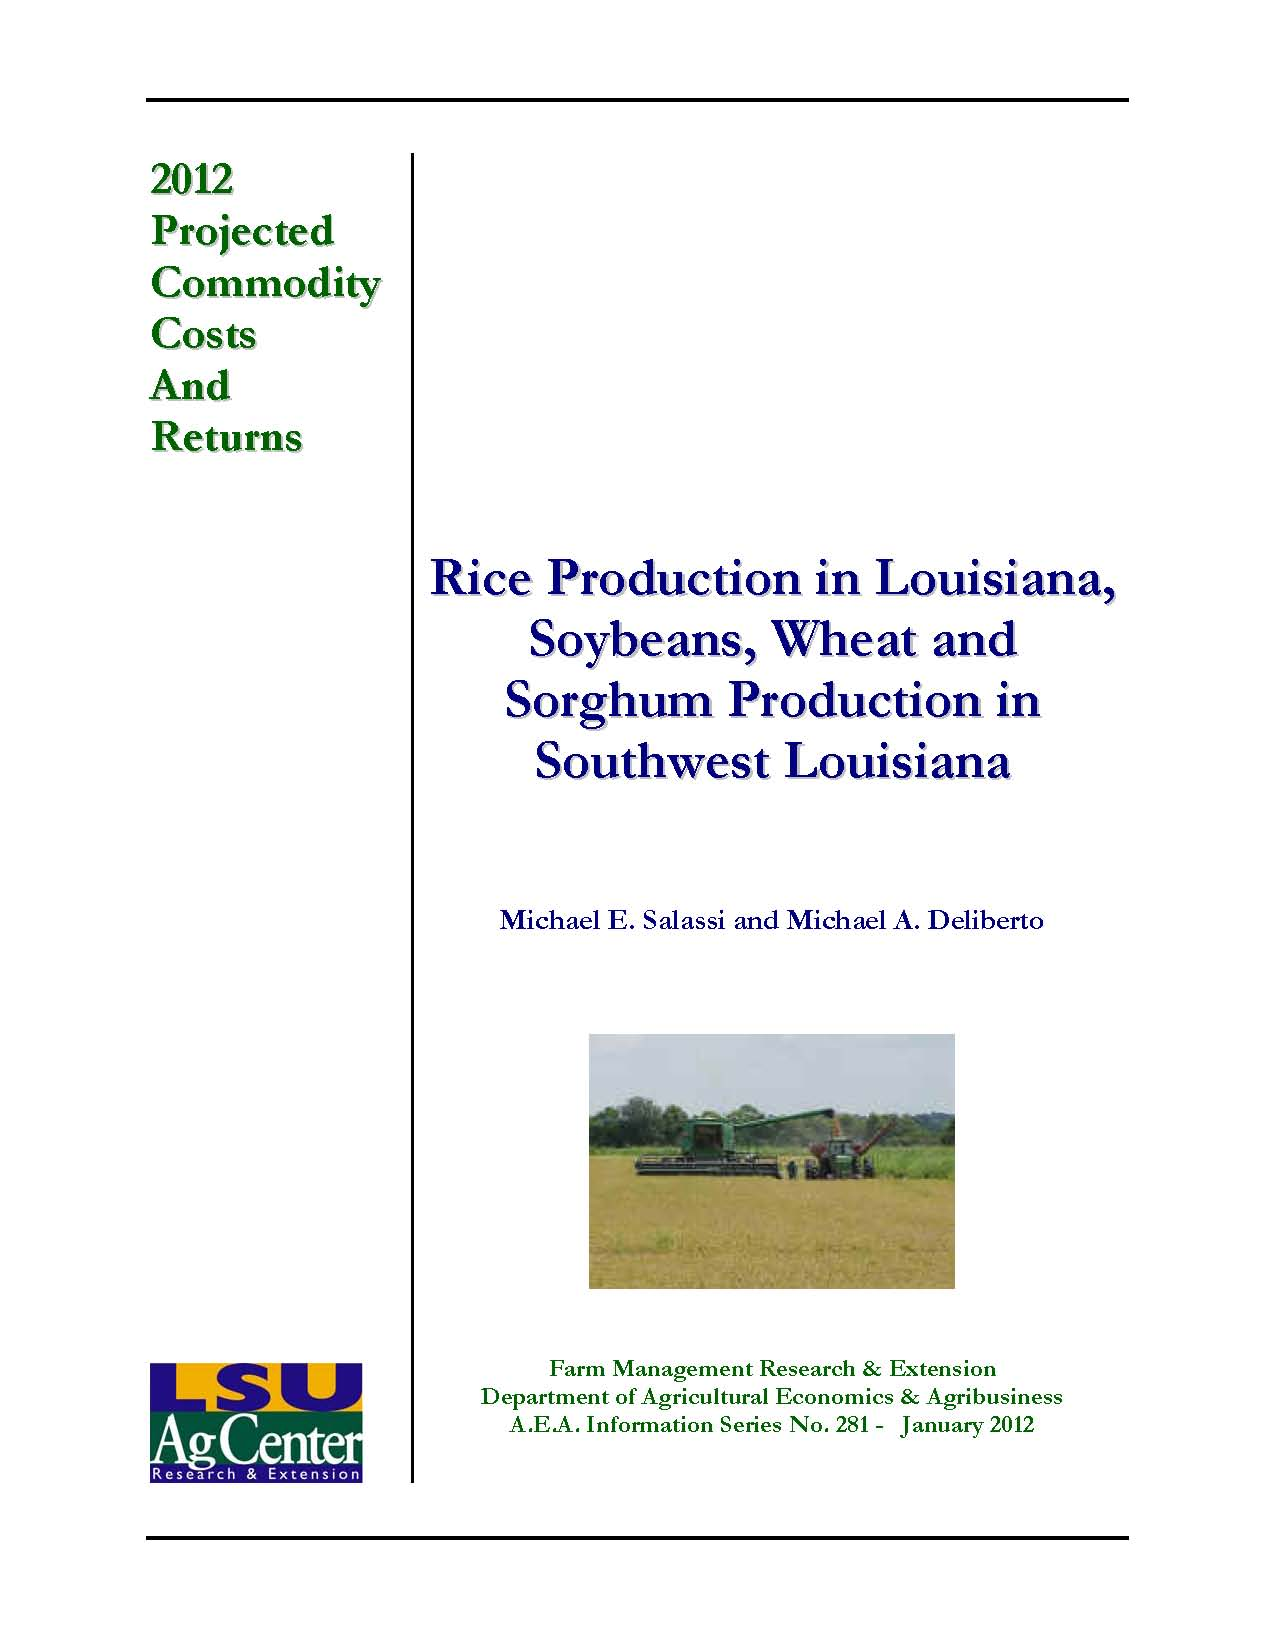 2012 Projected Louisiana Rice Production Costs